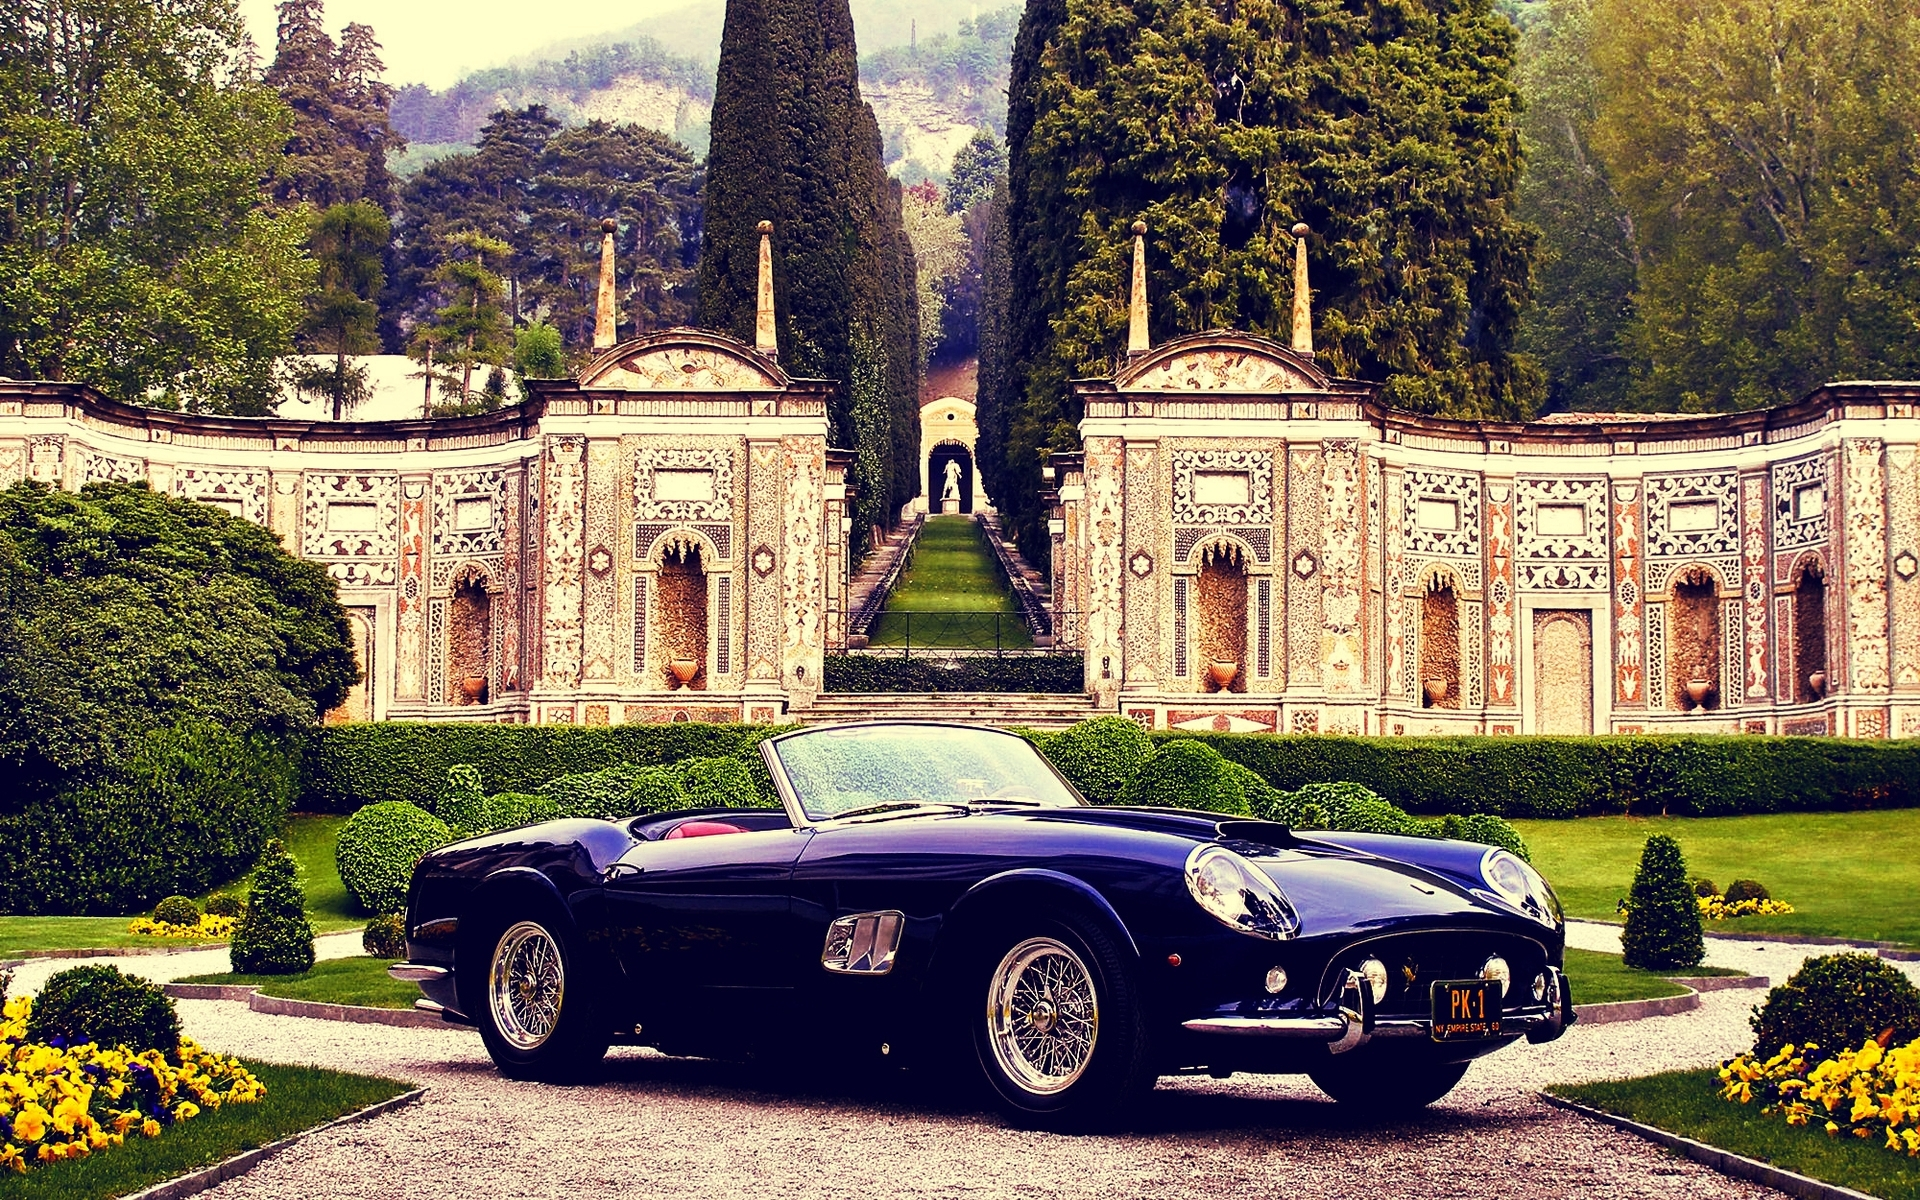 27026 download wallpaper Transport, Auto, Ferrari screensavers and pictures for free